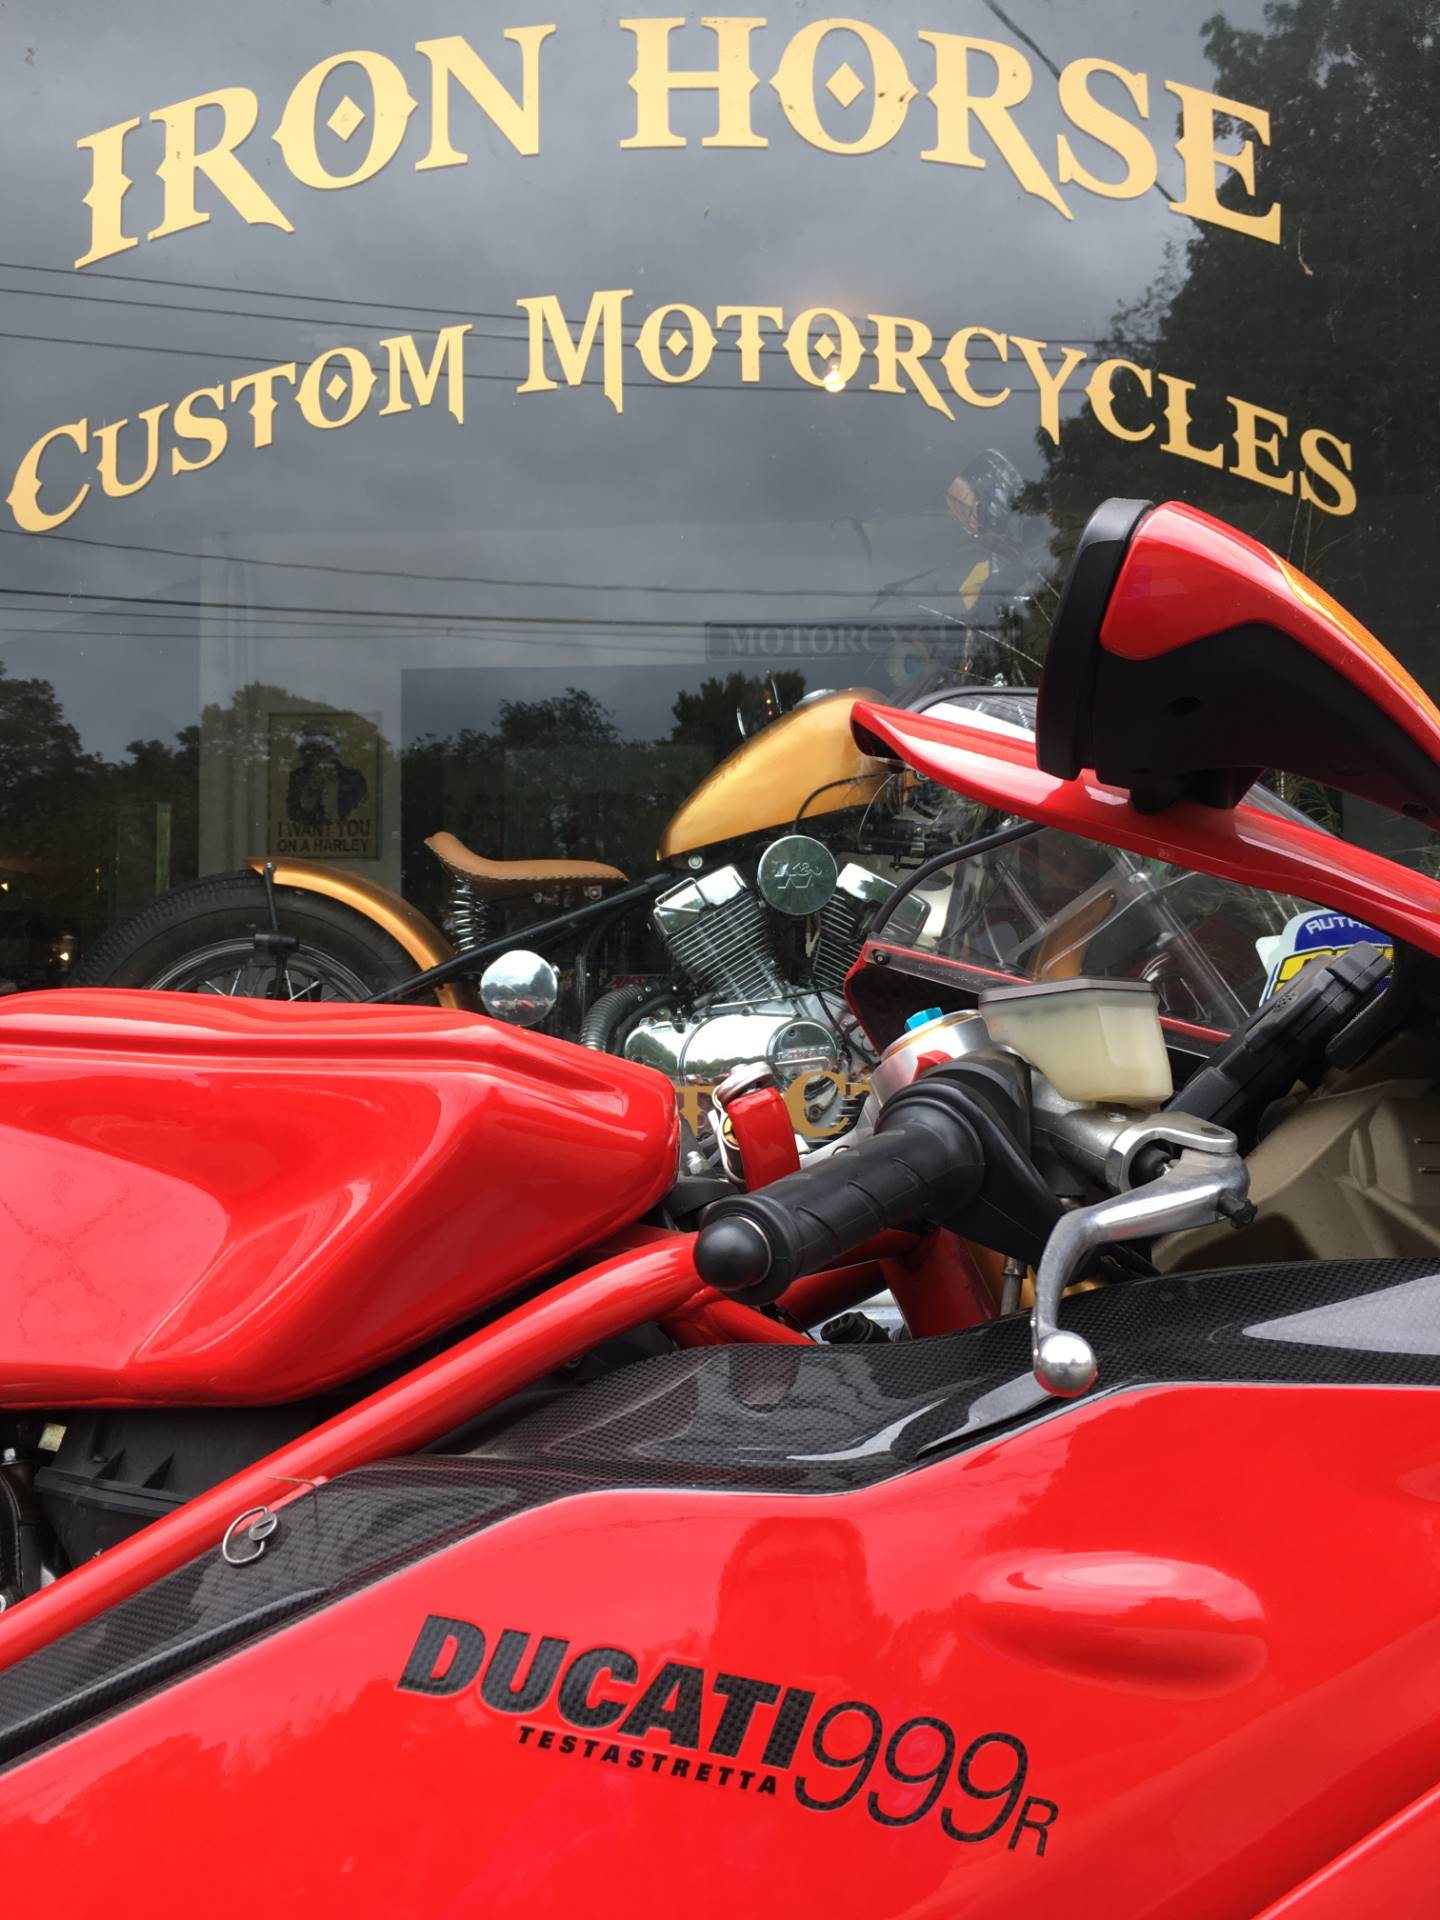 2005 Ducati 999r in Kent, Connecticut - Photo 7